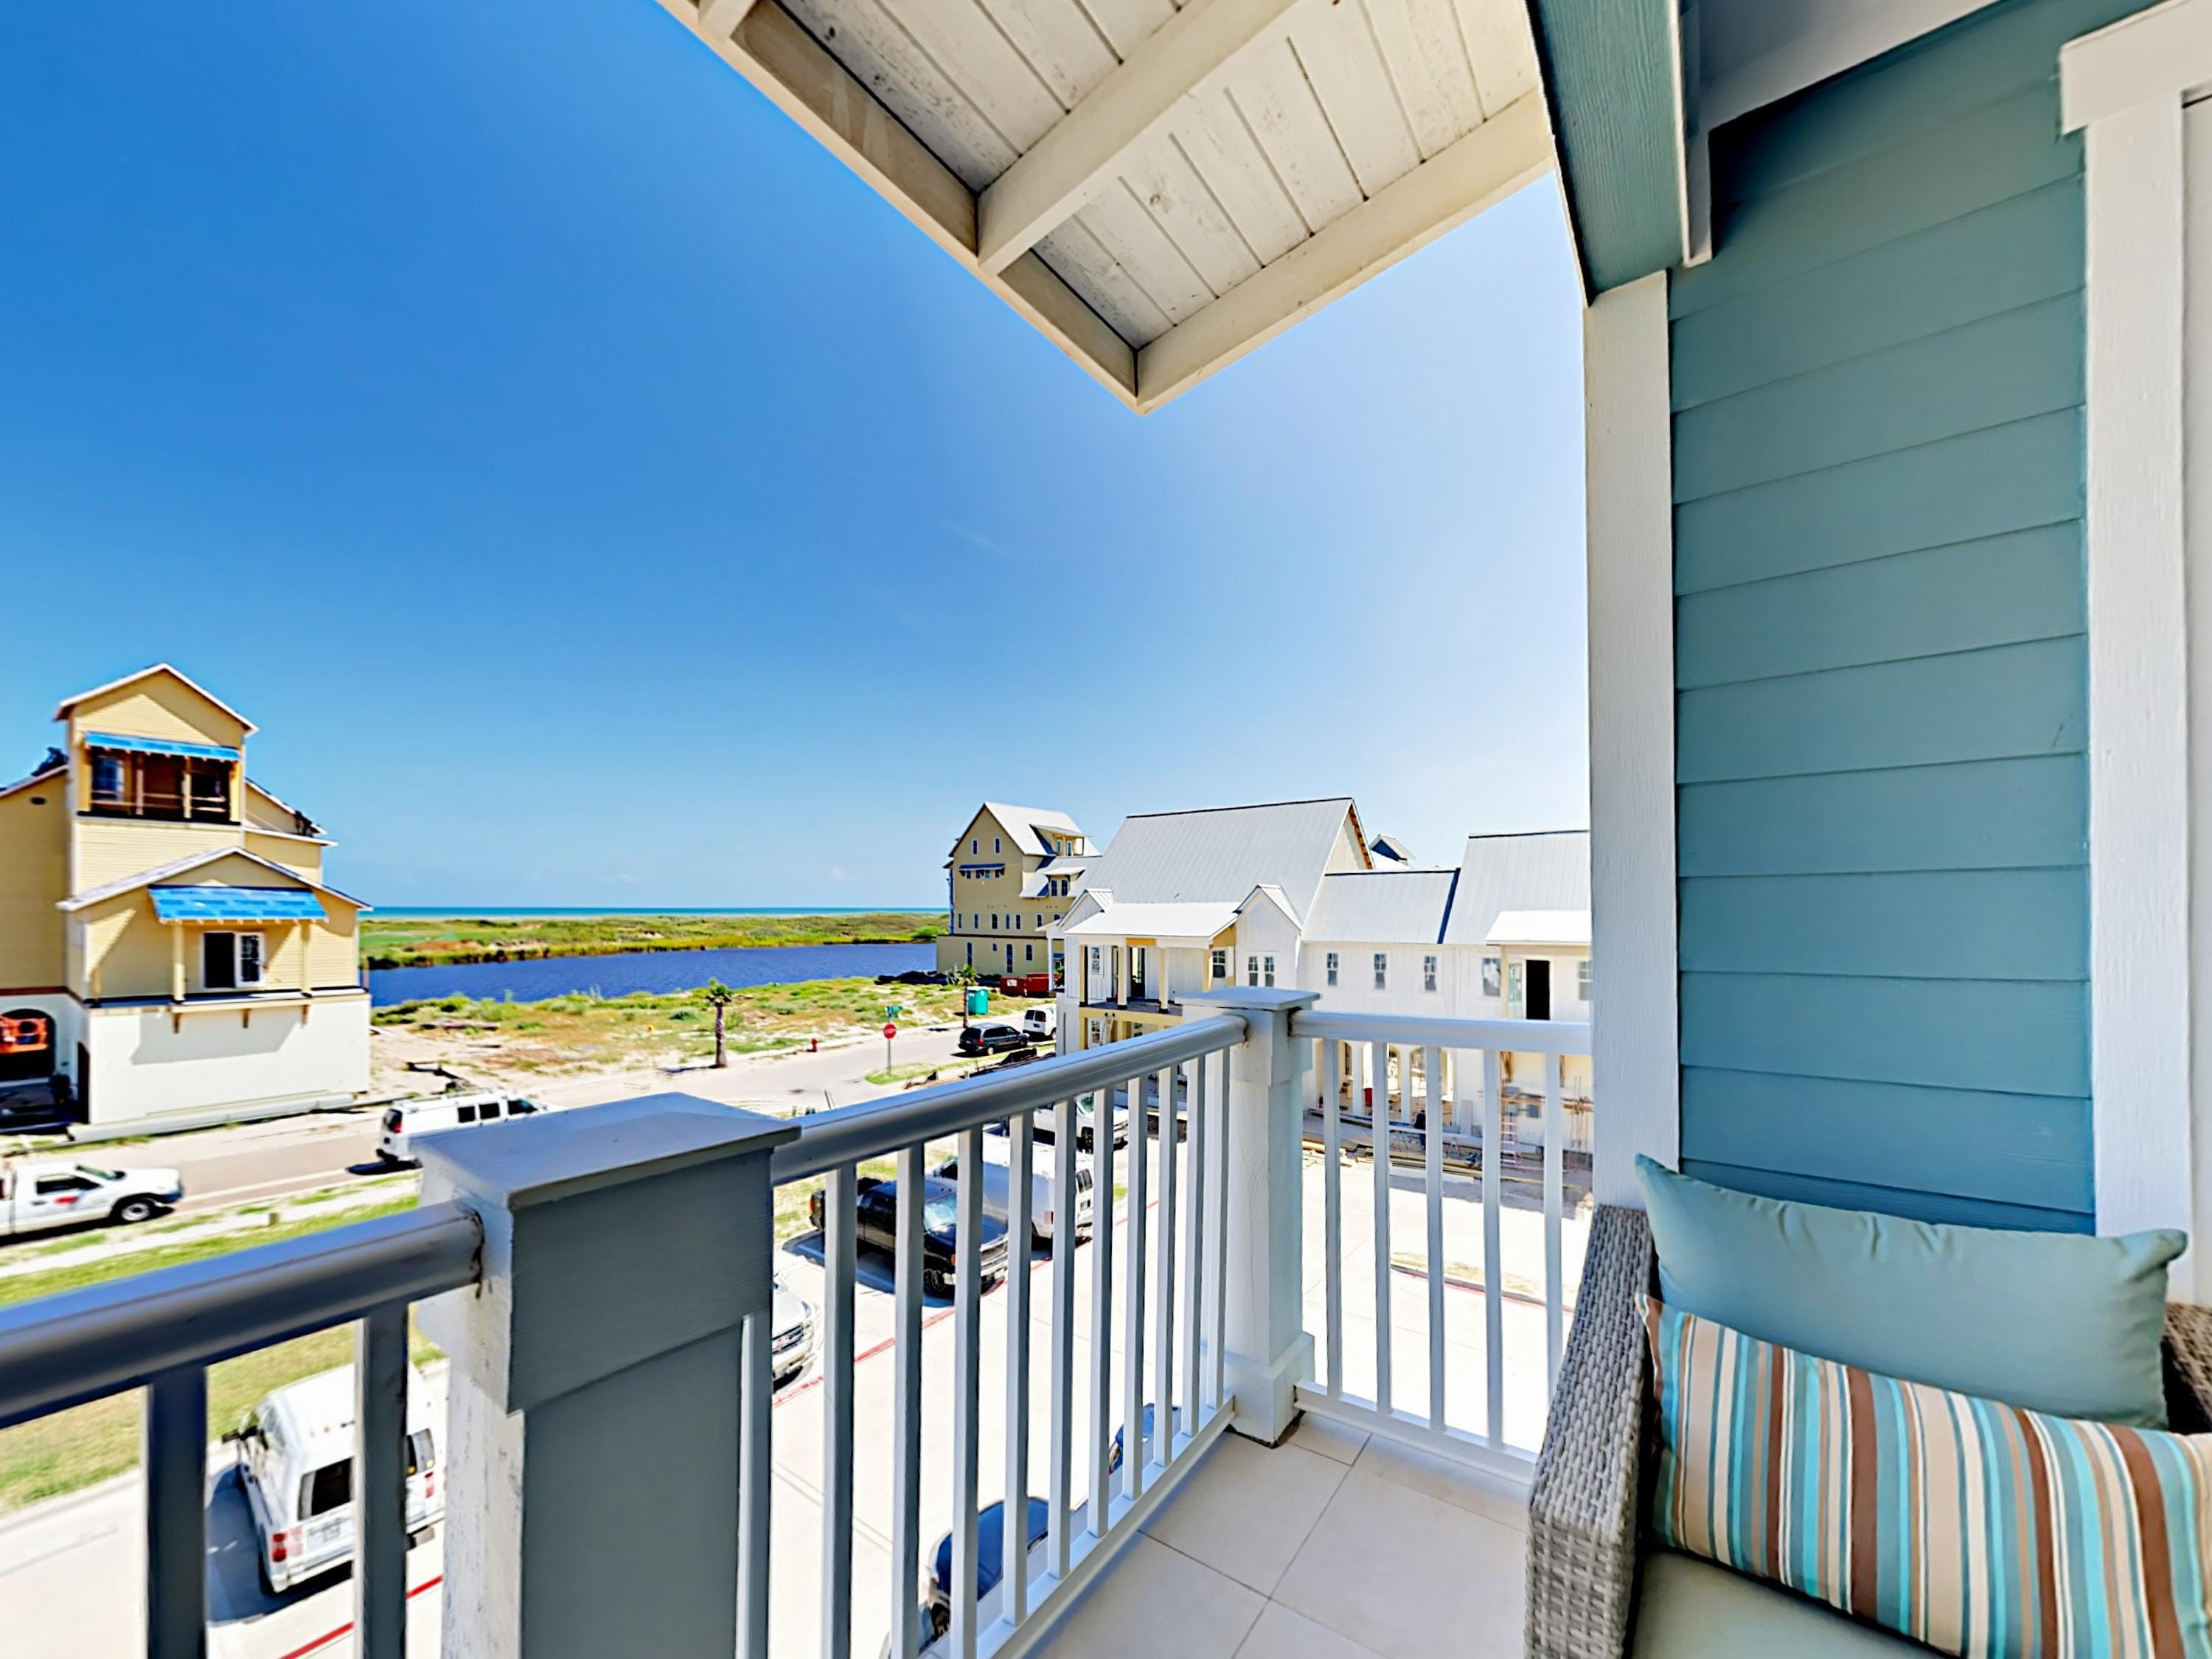 This property is within walking distance to the beach via the boardwalk.